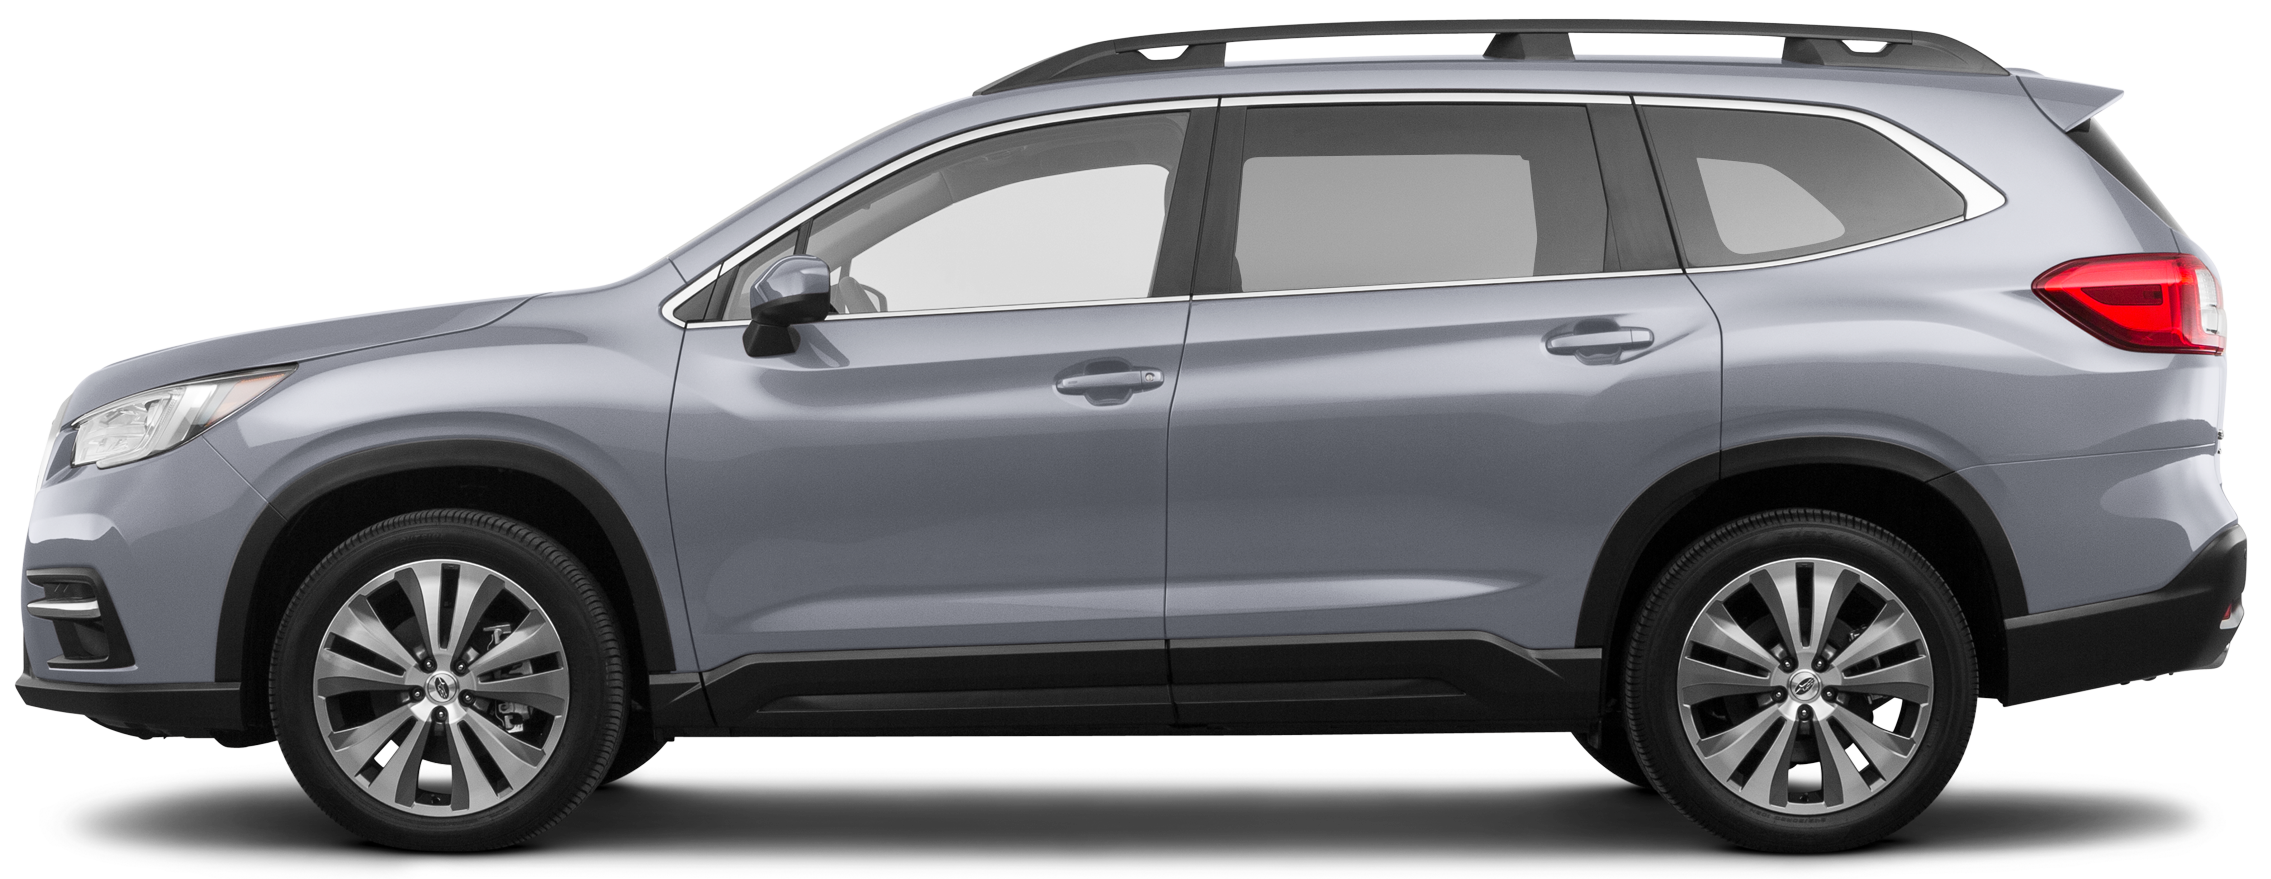 http://images.dealer.com/ddc/vehicles/2021/Subaru/Ascent/SUV/trim_Premium_8e6e38/perspective/side-left/2021_76.png